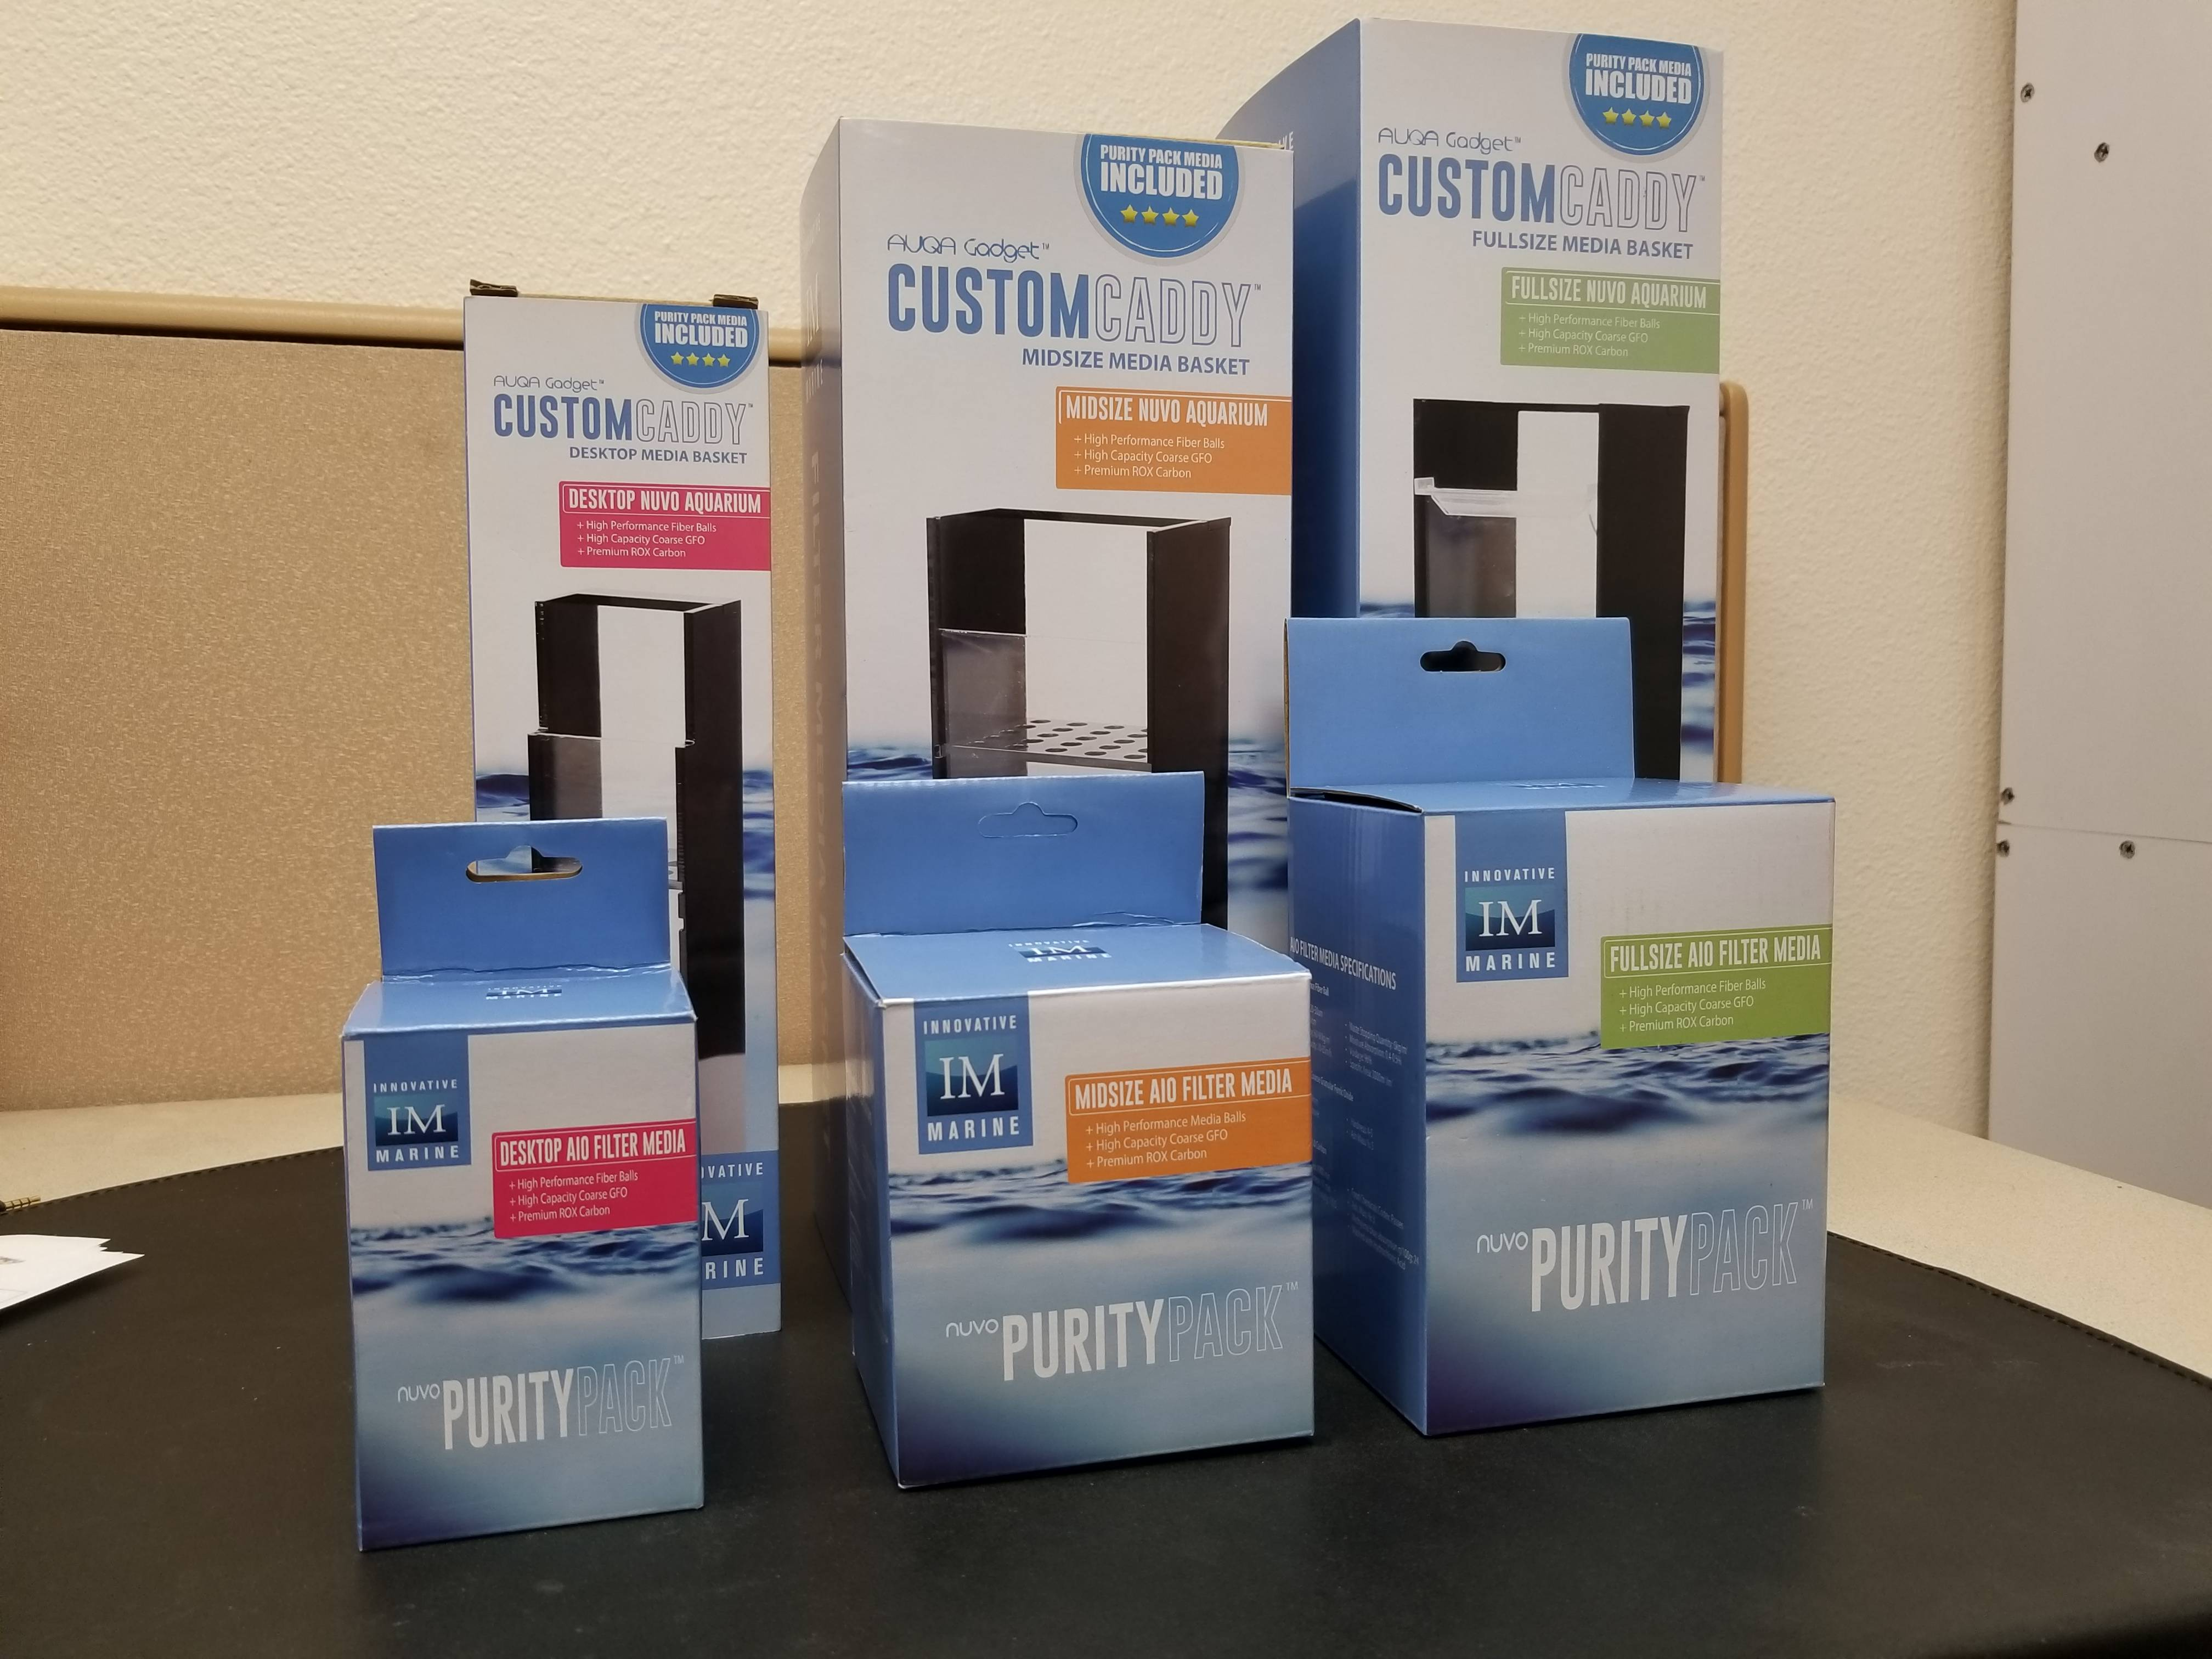 CustomCaddy and Purity Pack Family